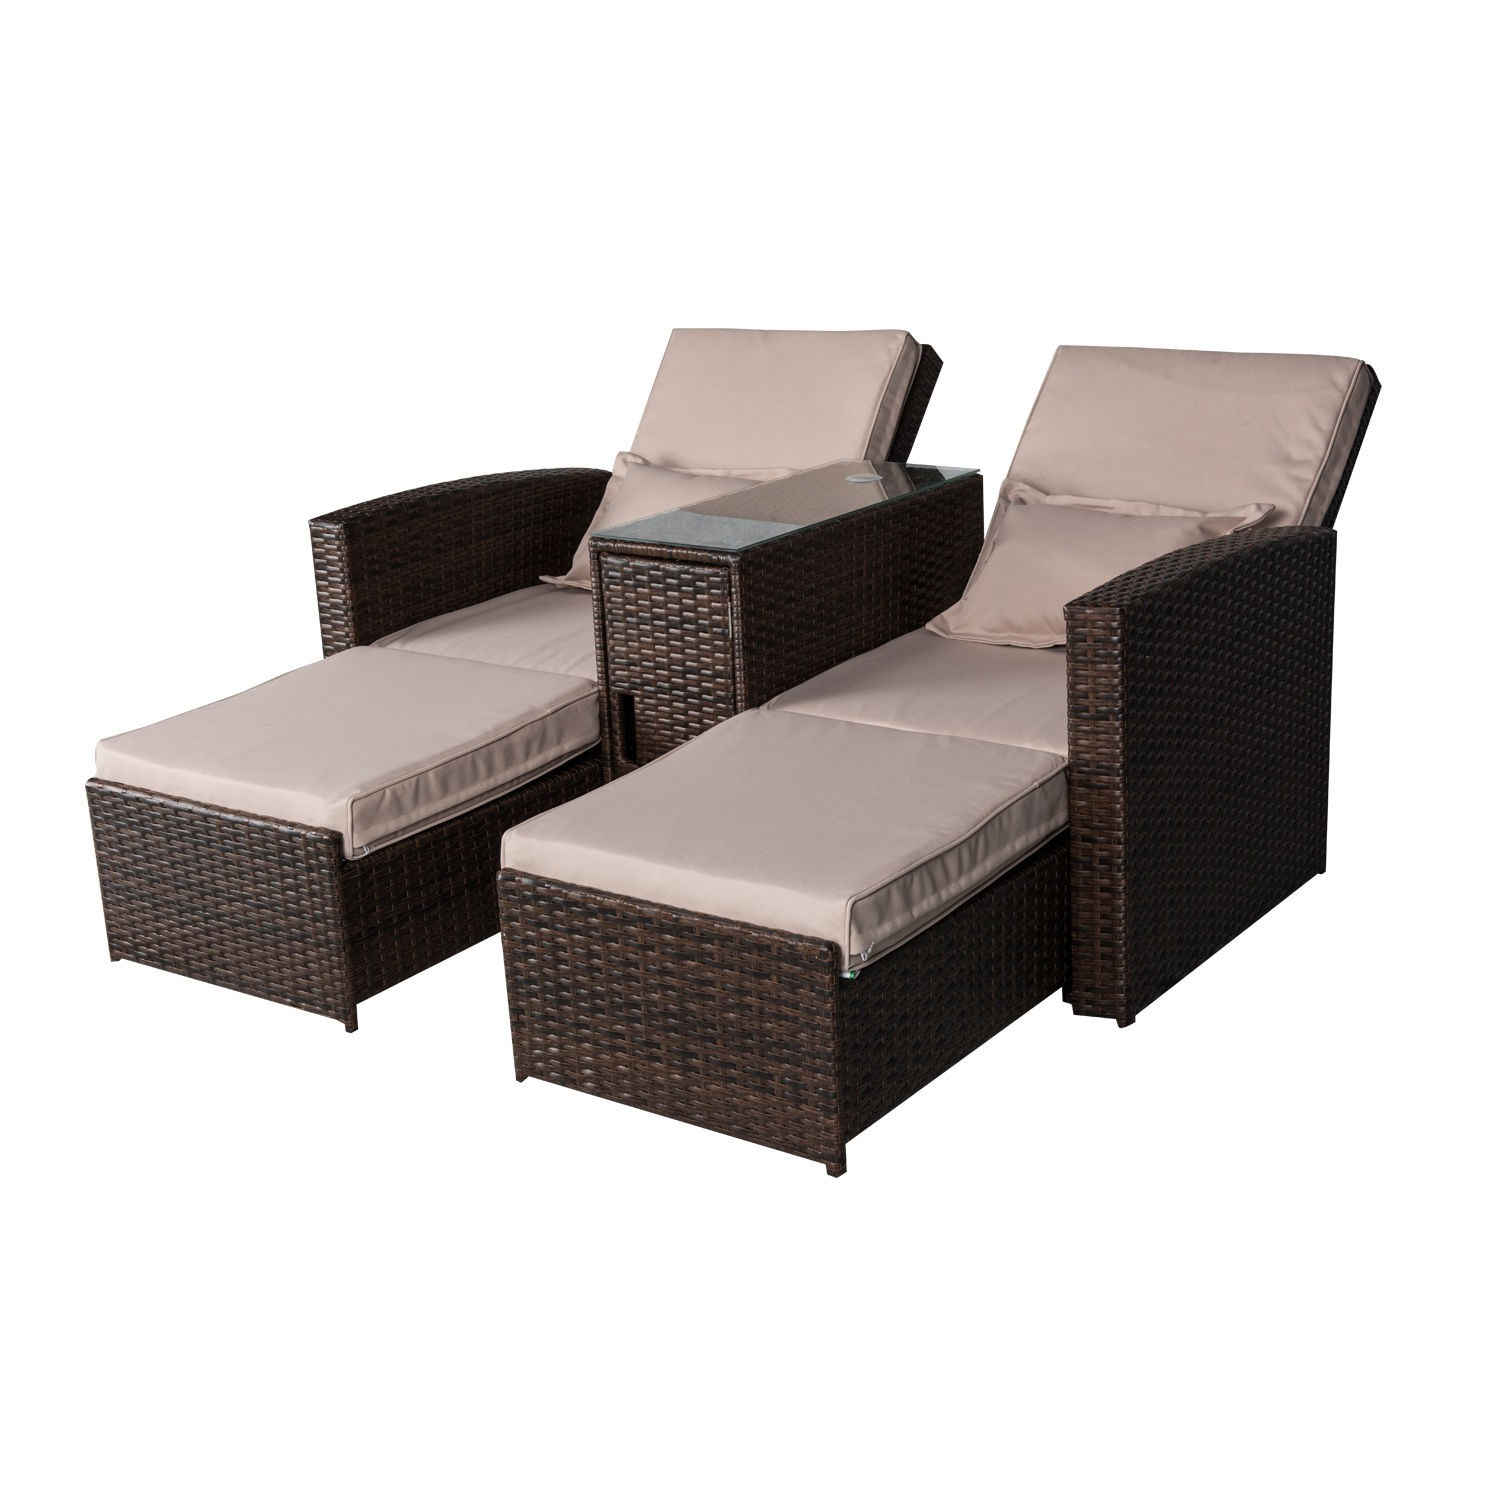 Outsunny 3 Piece Outdoor Rattan Wicker Chaise Lounge For Colby Manual Reclining Sofas (View 14 of 15)